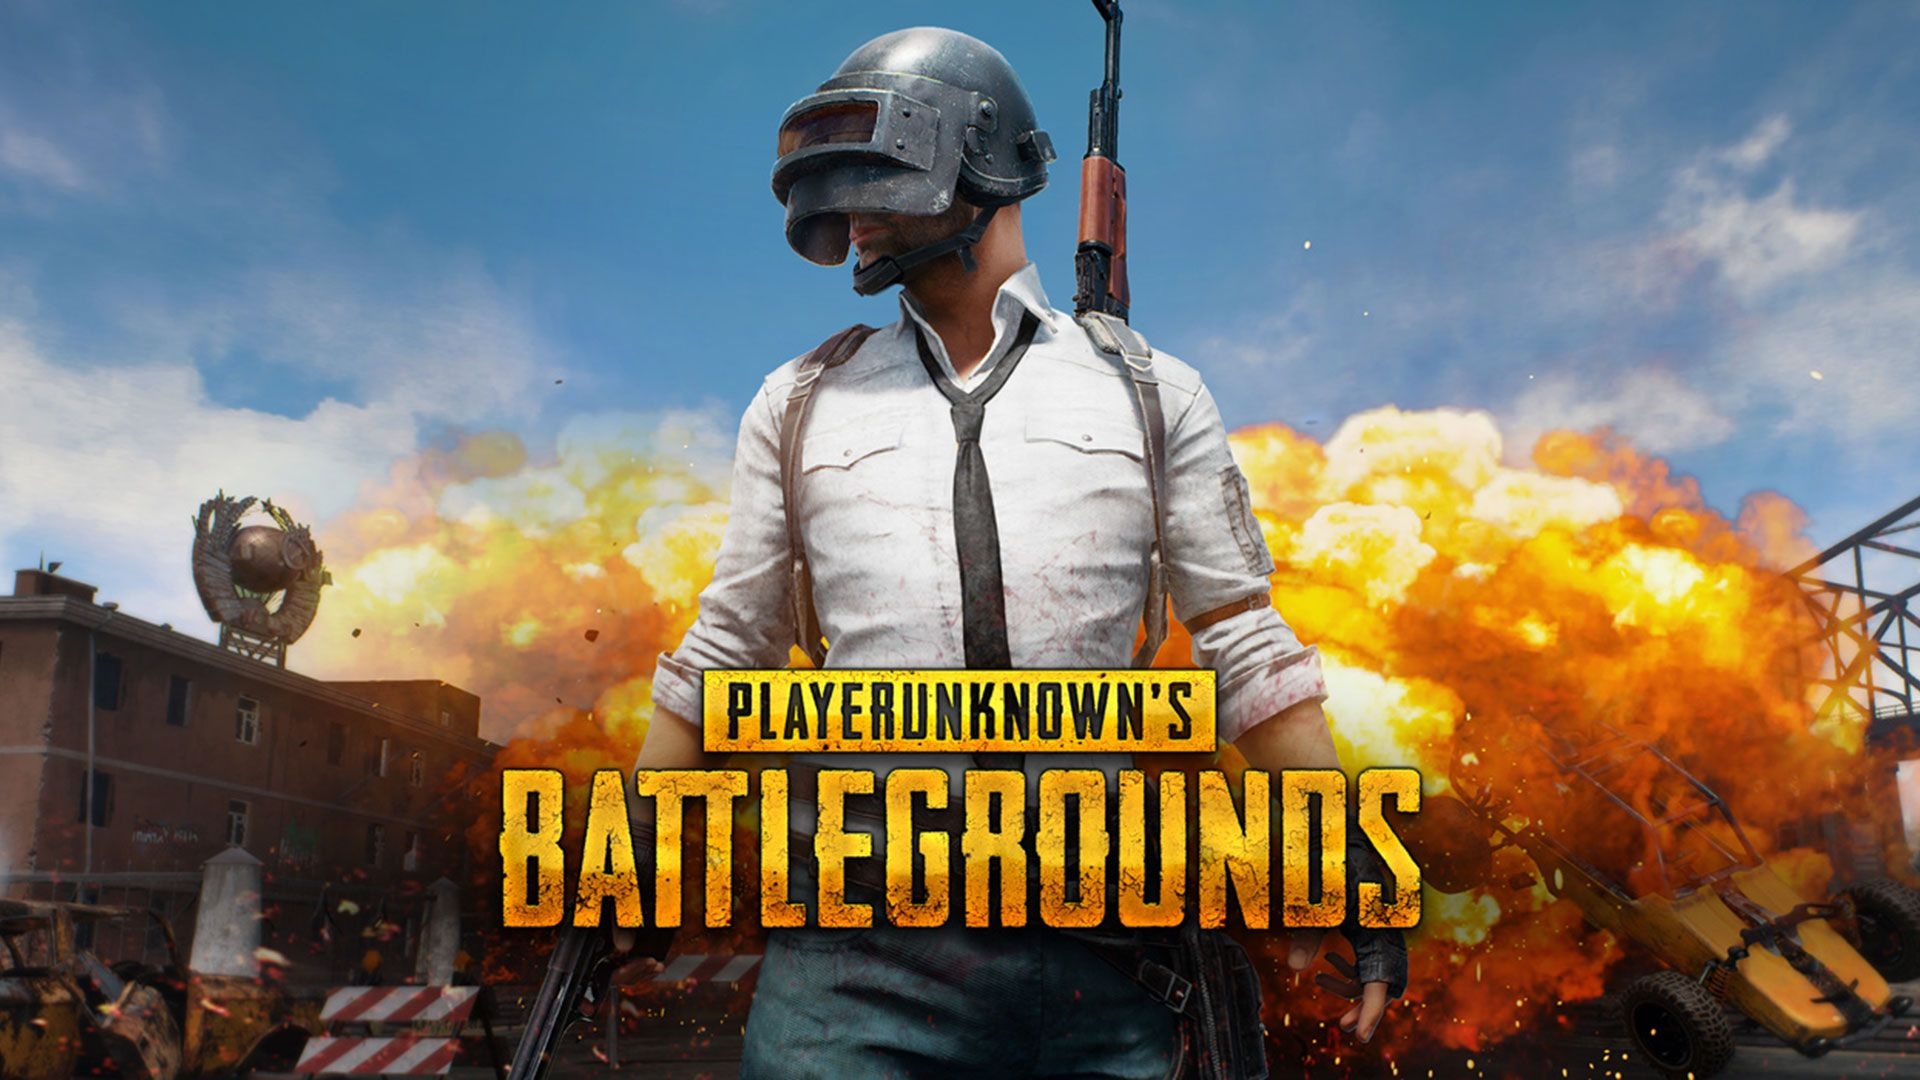 Pubg Mobile Full Screen Wallpapers: Pubg Wallpapers Full Hd On Wallpaper 1080p HD